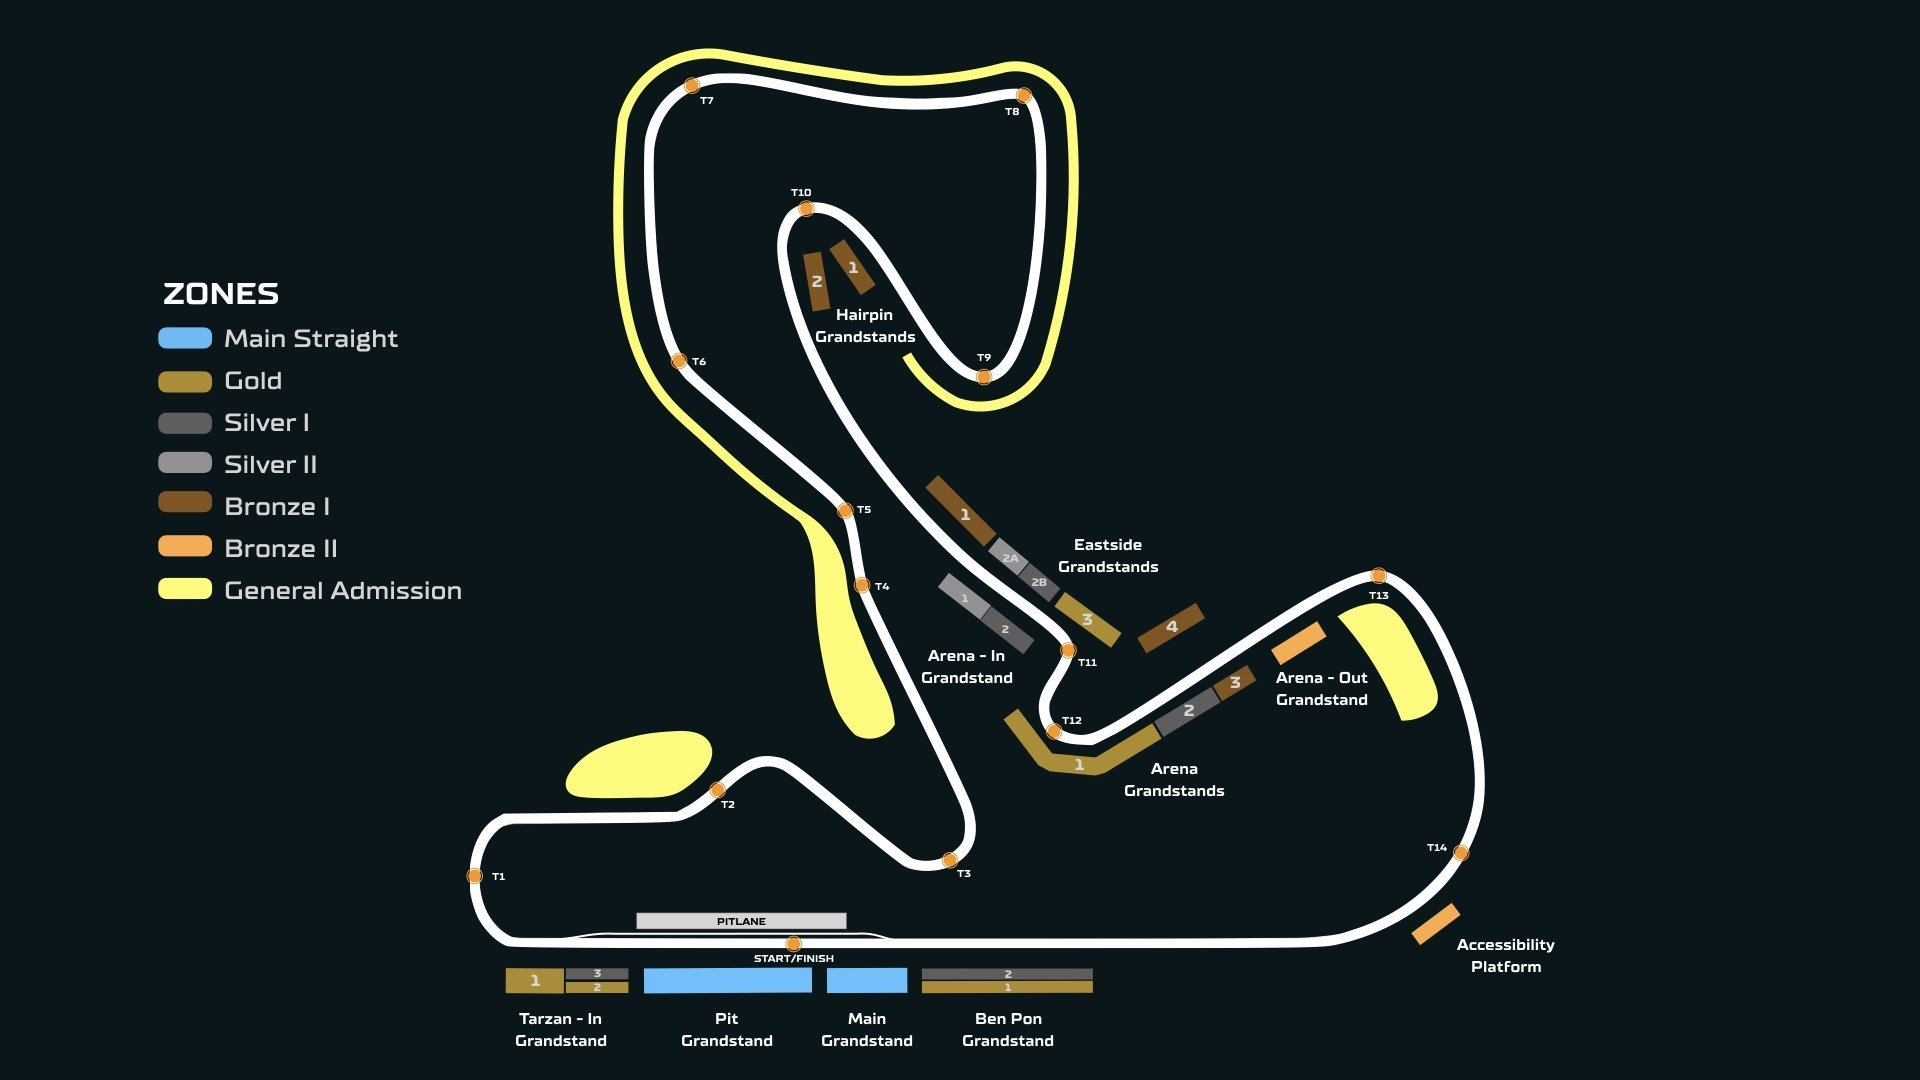 https://dutchgp.com/c/u/v5-Tribune-overview-website-Dutch-Grand-Prix-170619.jpeg